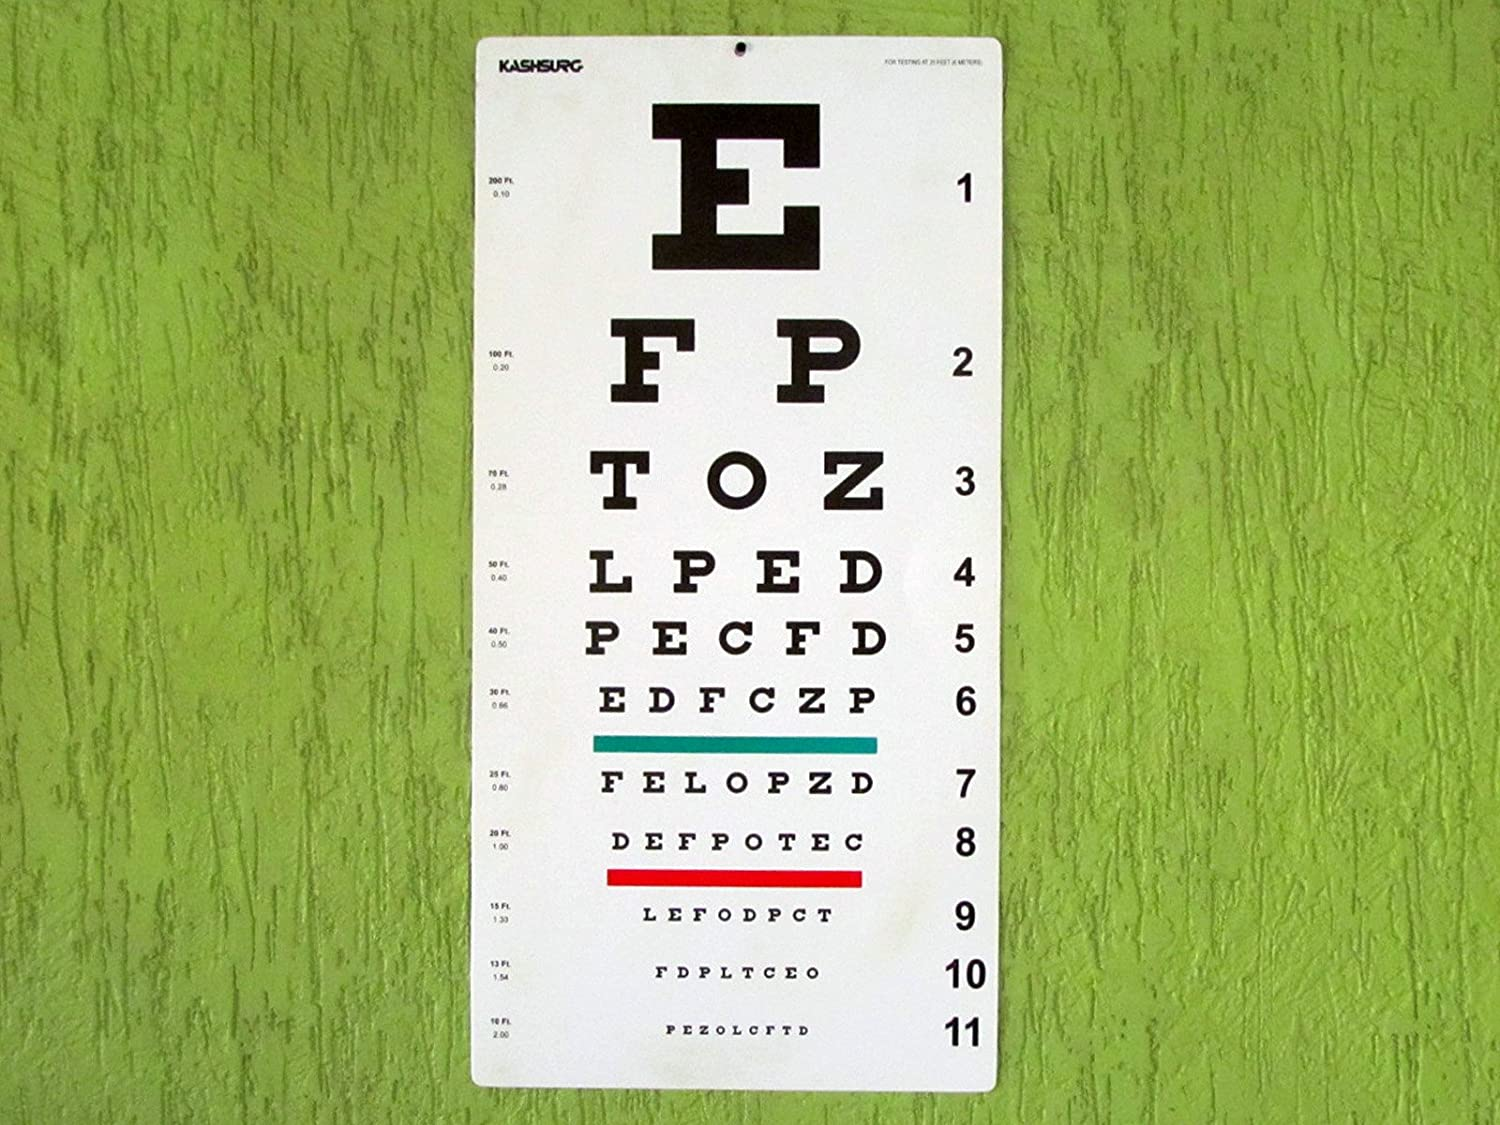 Amazon snellen and tumbling e non reflective matte finish amazon snellen and tumbling e non reflective matte finish wall eye chart size 22 x 11 inch combo pack health personal care geenschuldenfo Images